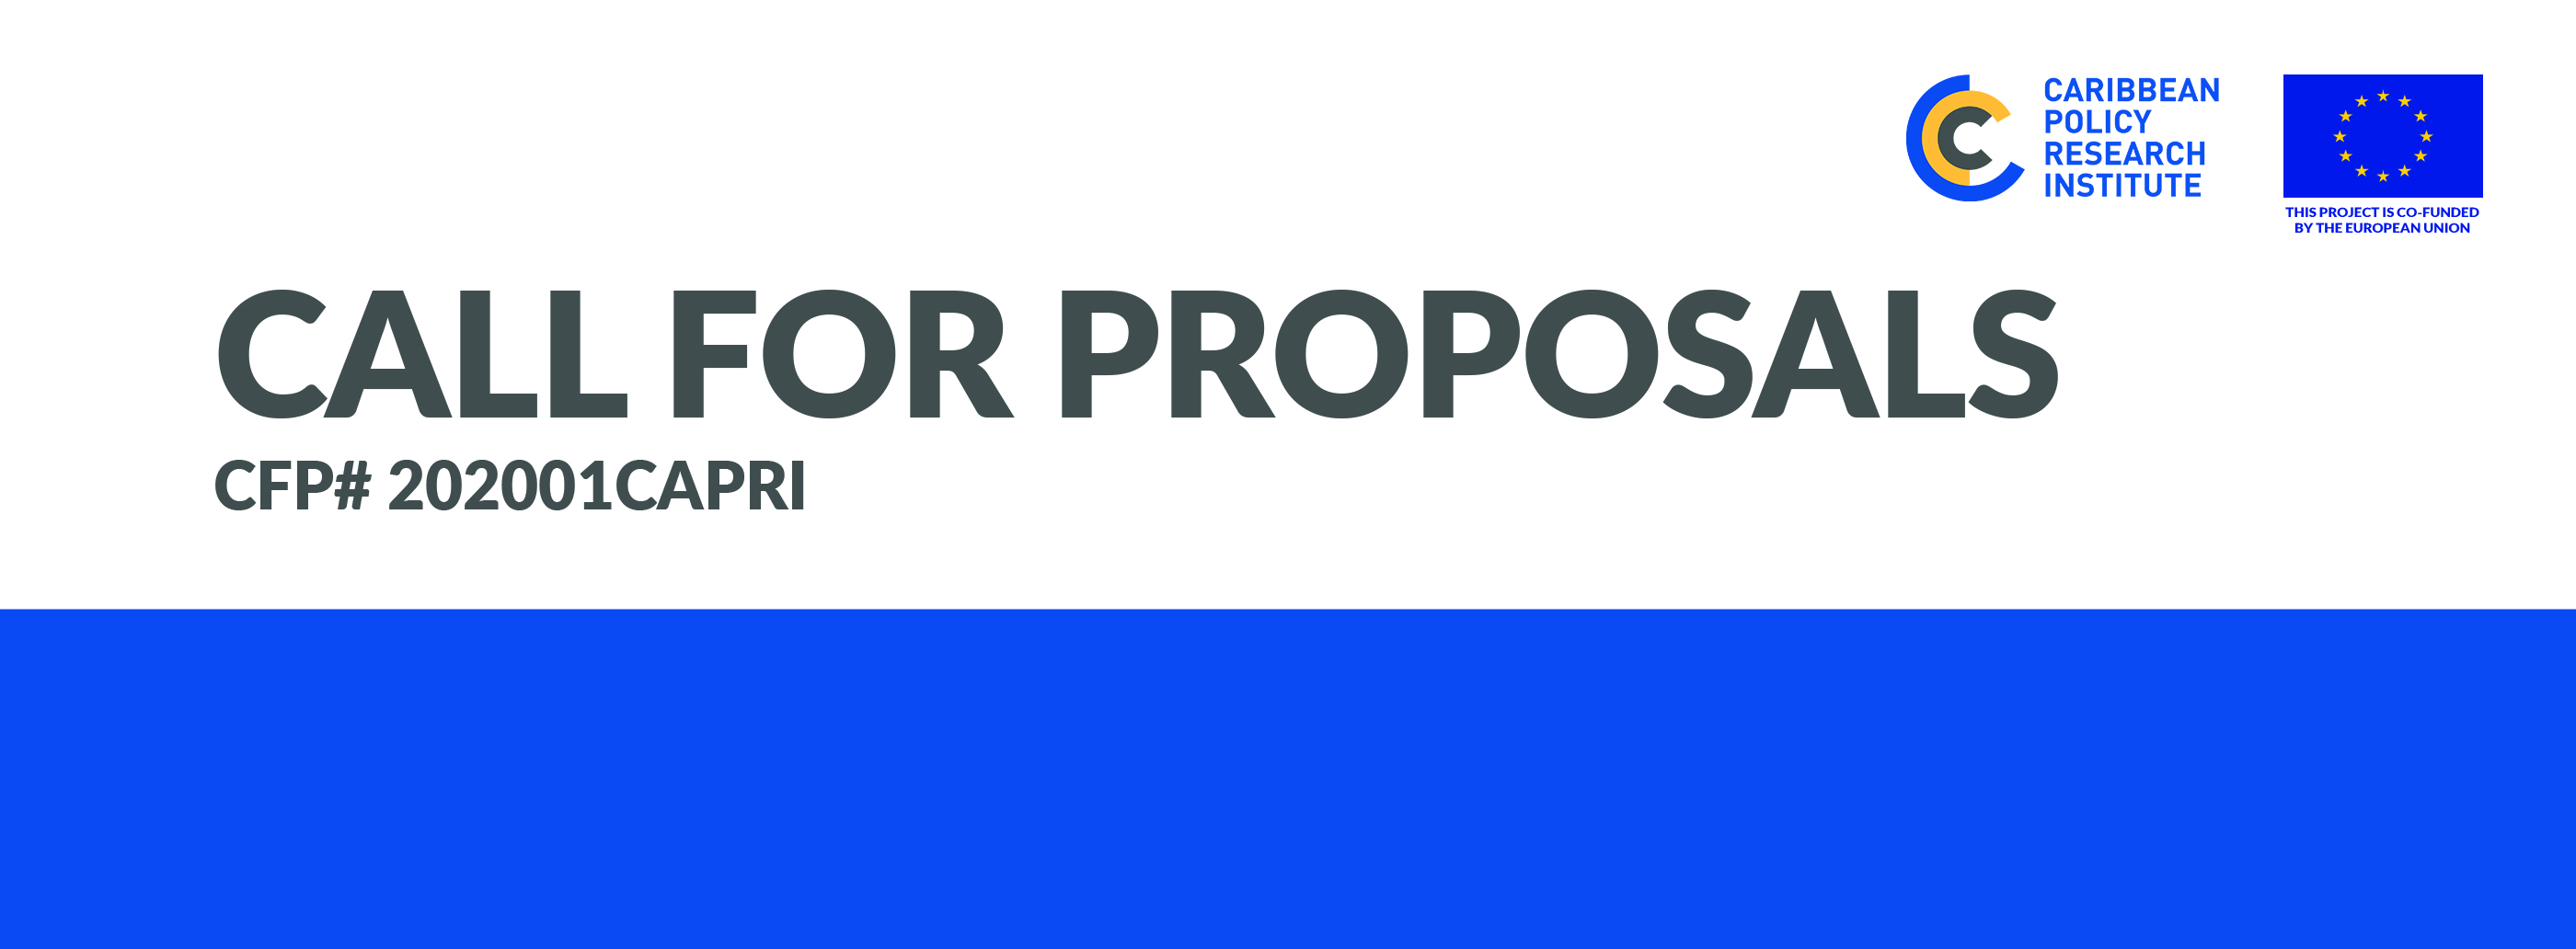 call_for_proposal_web_banner.jpg